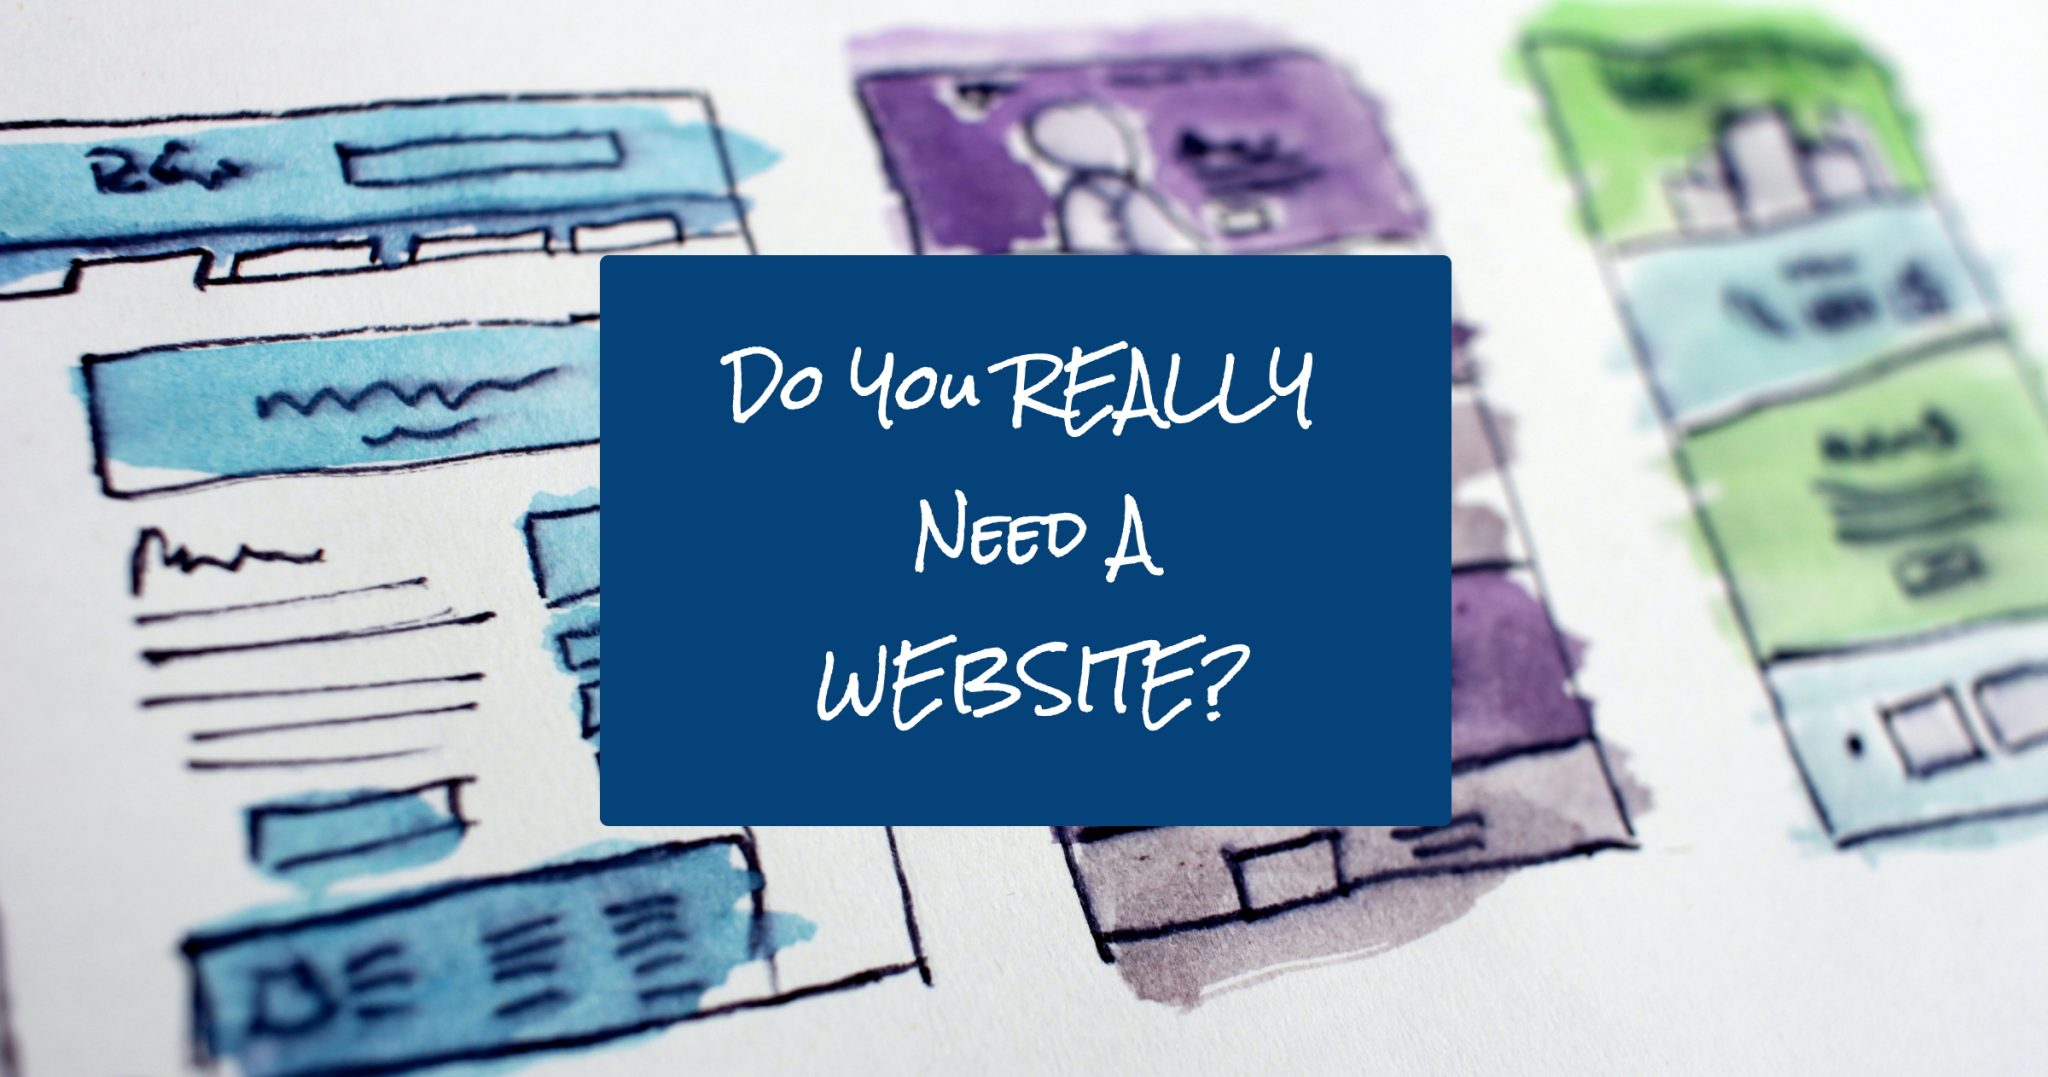 Do You Really Need a Website? 3